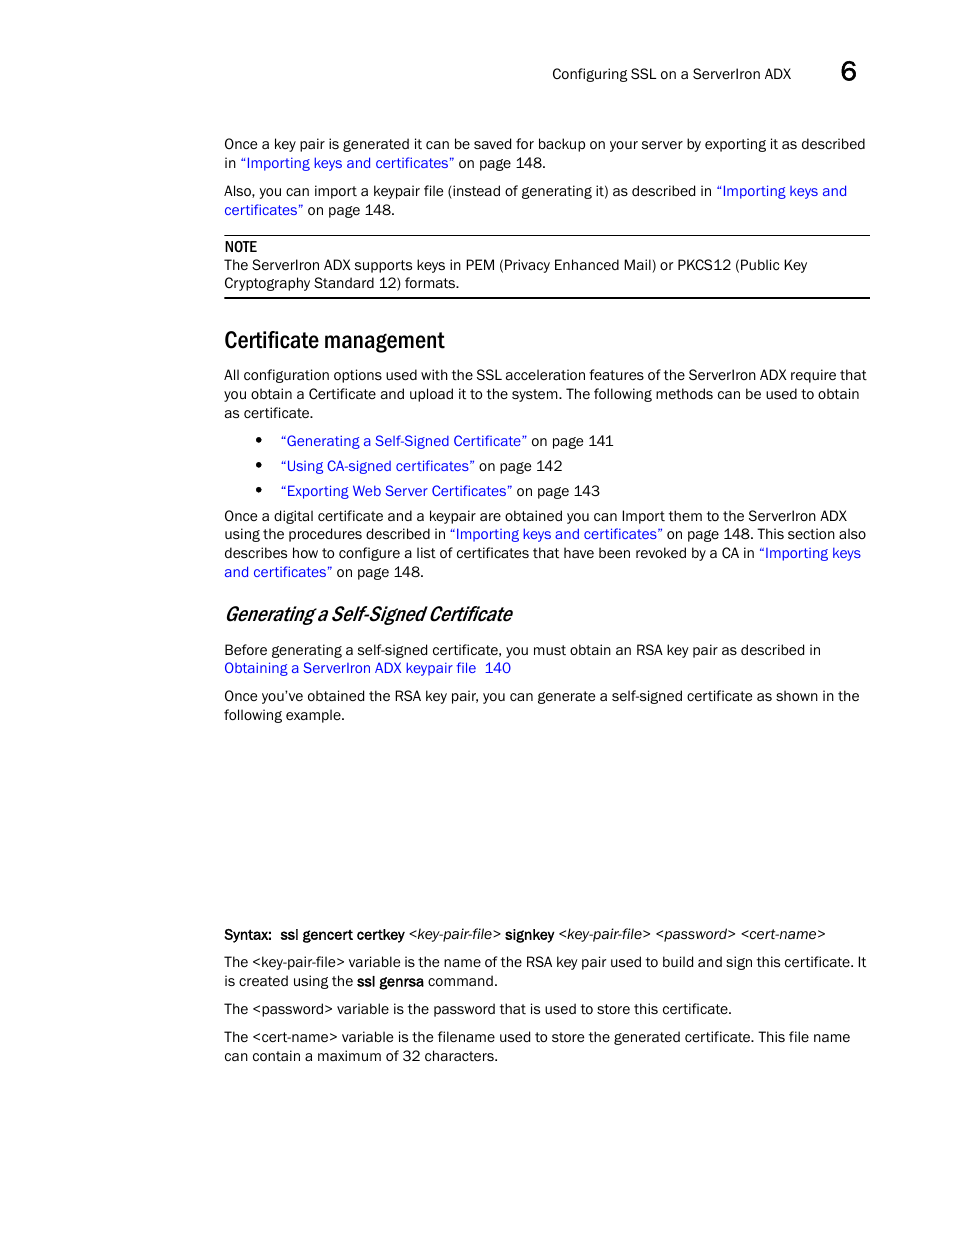 Certificate management, Generating a self-signed certificate